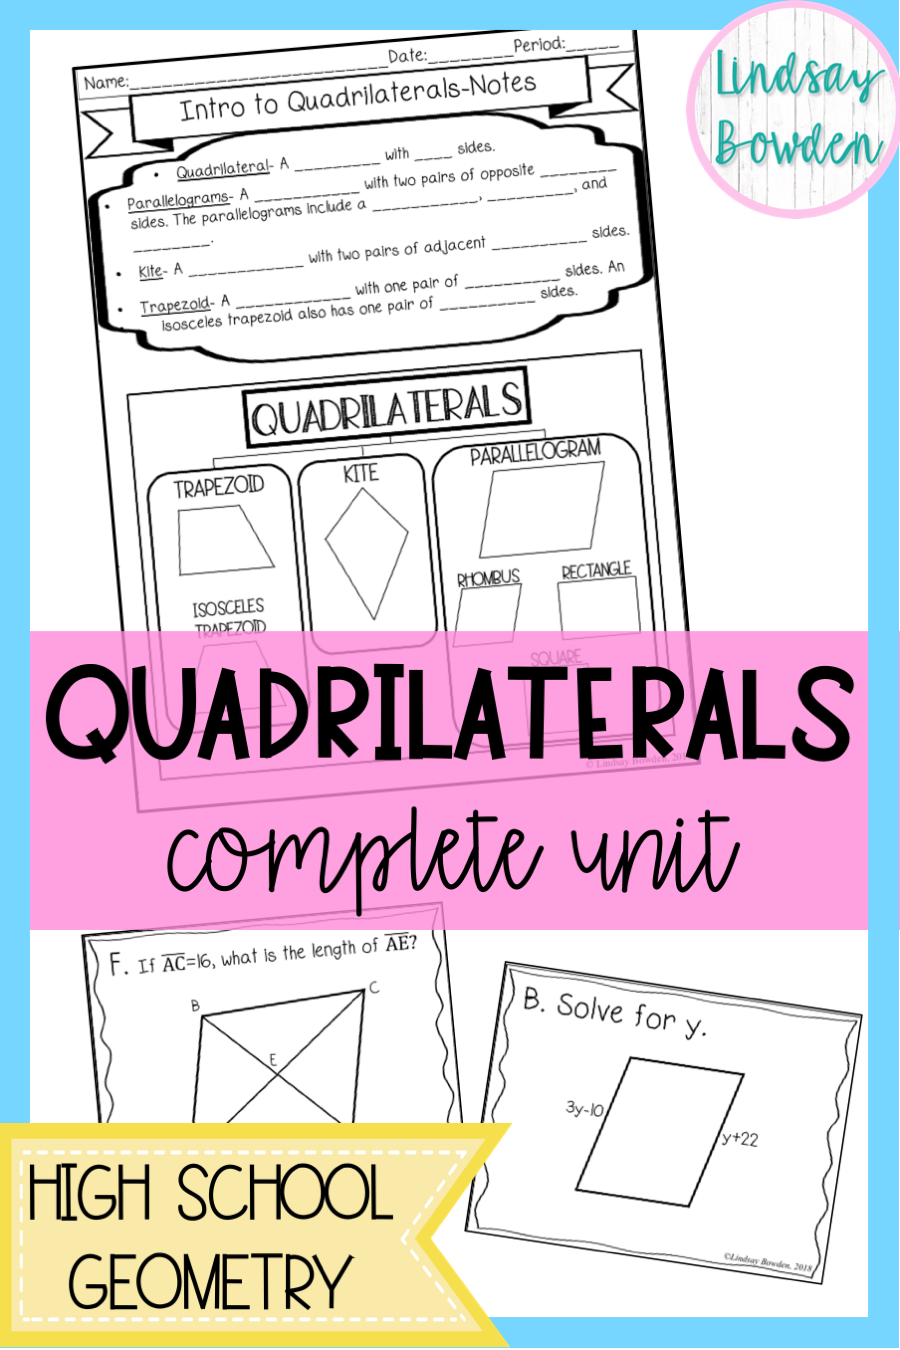 High School Geometry Quadrilaterals Unit Includes Notes Worksheets Activities Post High School Geometry Lessons High School Geometry Notes Geometry Lessons [ 1350 x 900 Pixel ]